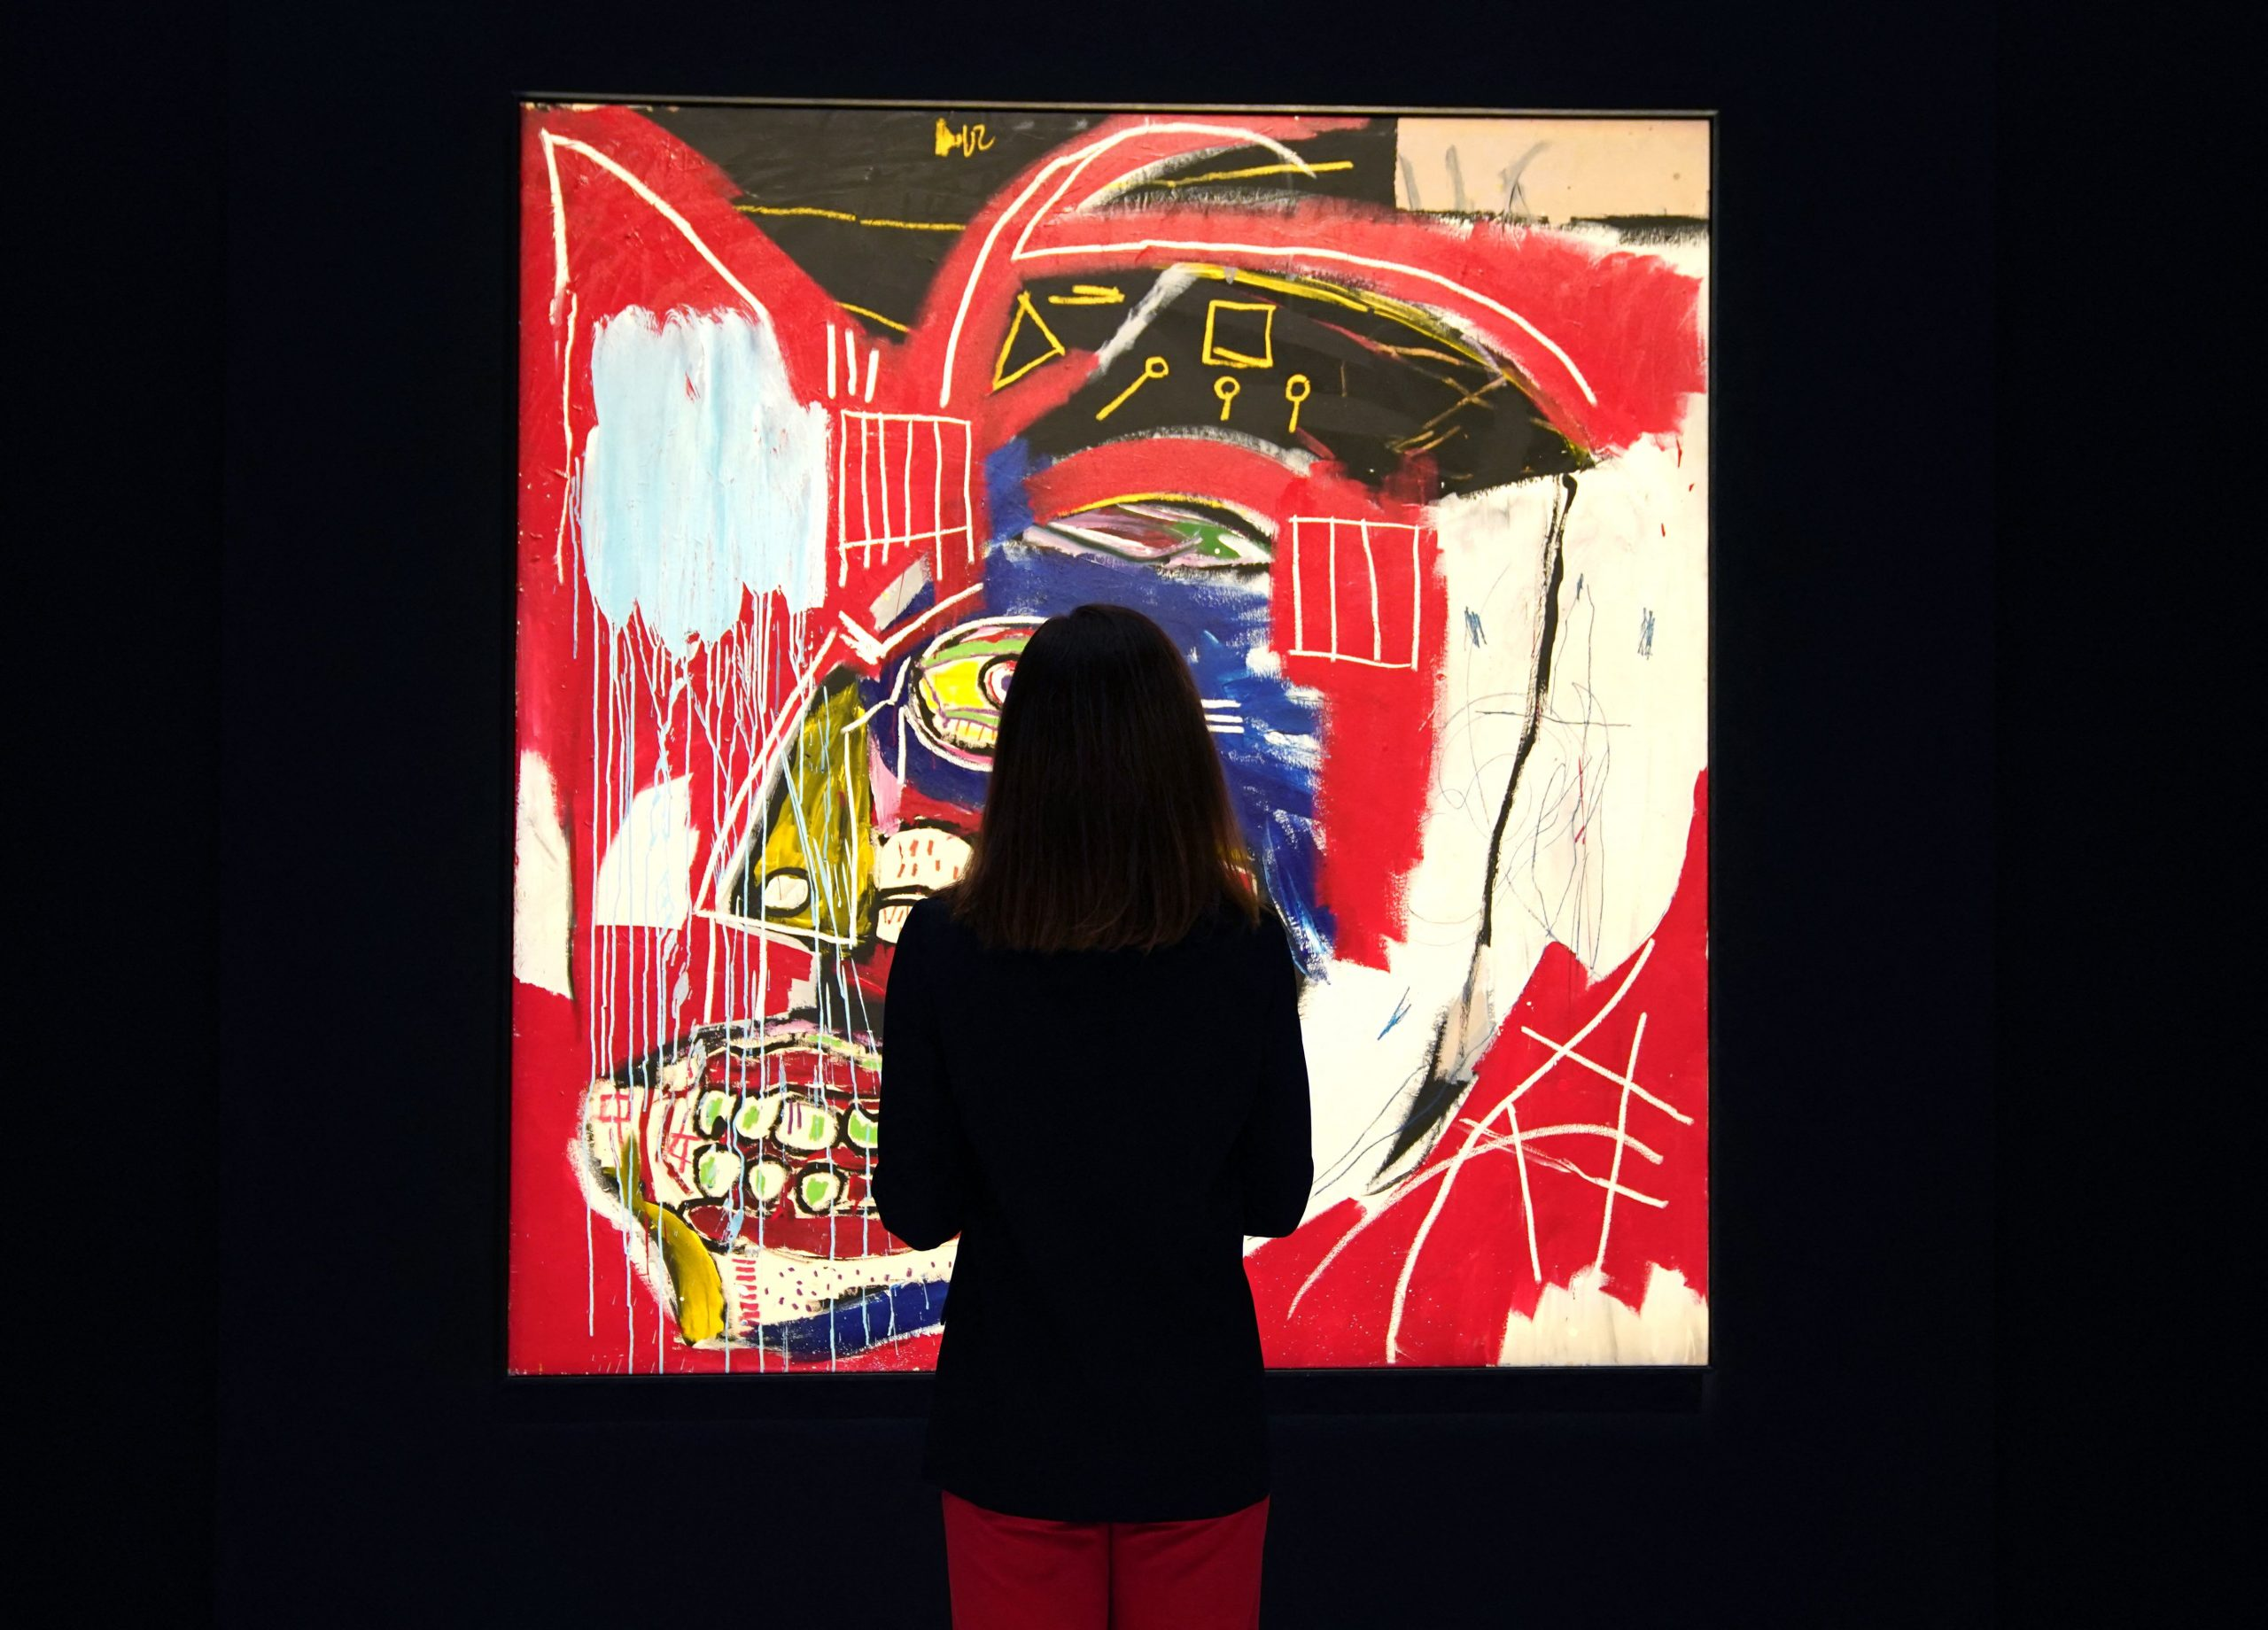 From Basquiat's Megawatt Week to the Backlash Over the Turner Prize: The Best and Worst of the Art World This Week